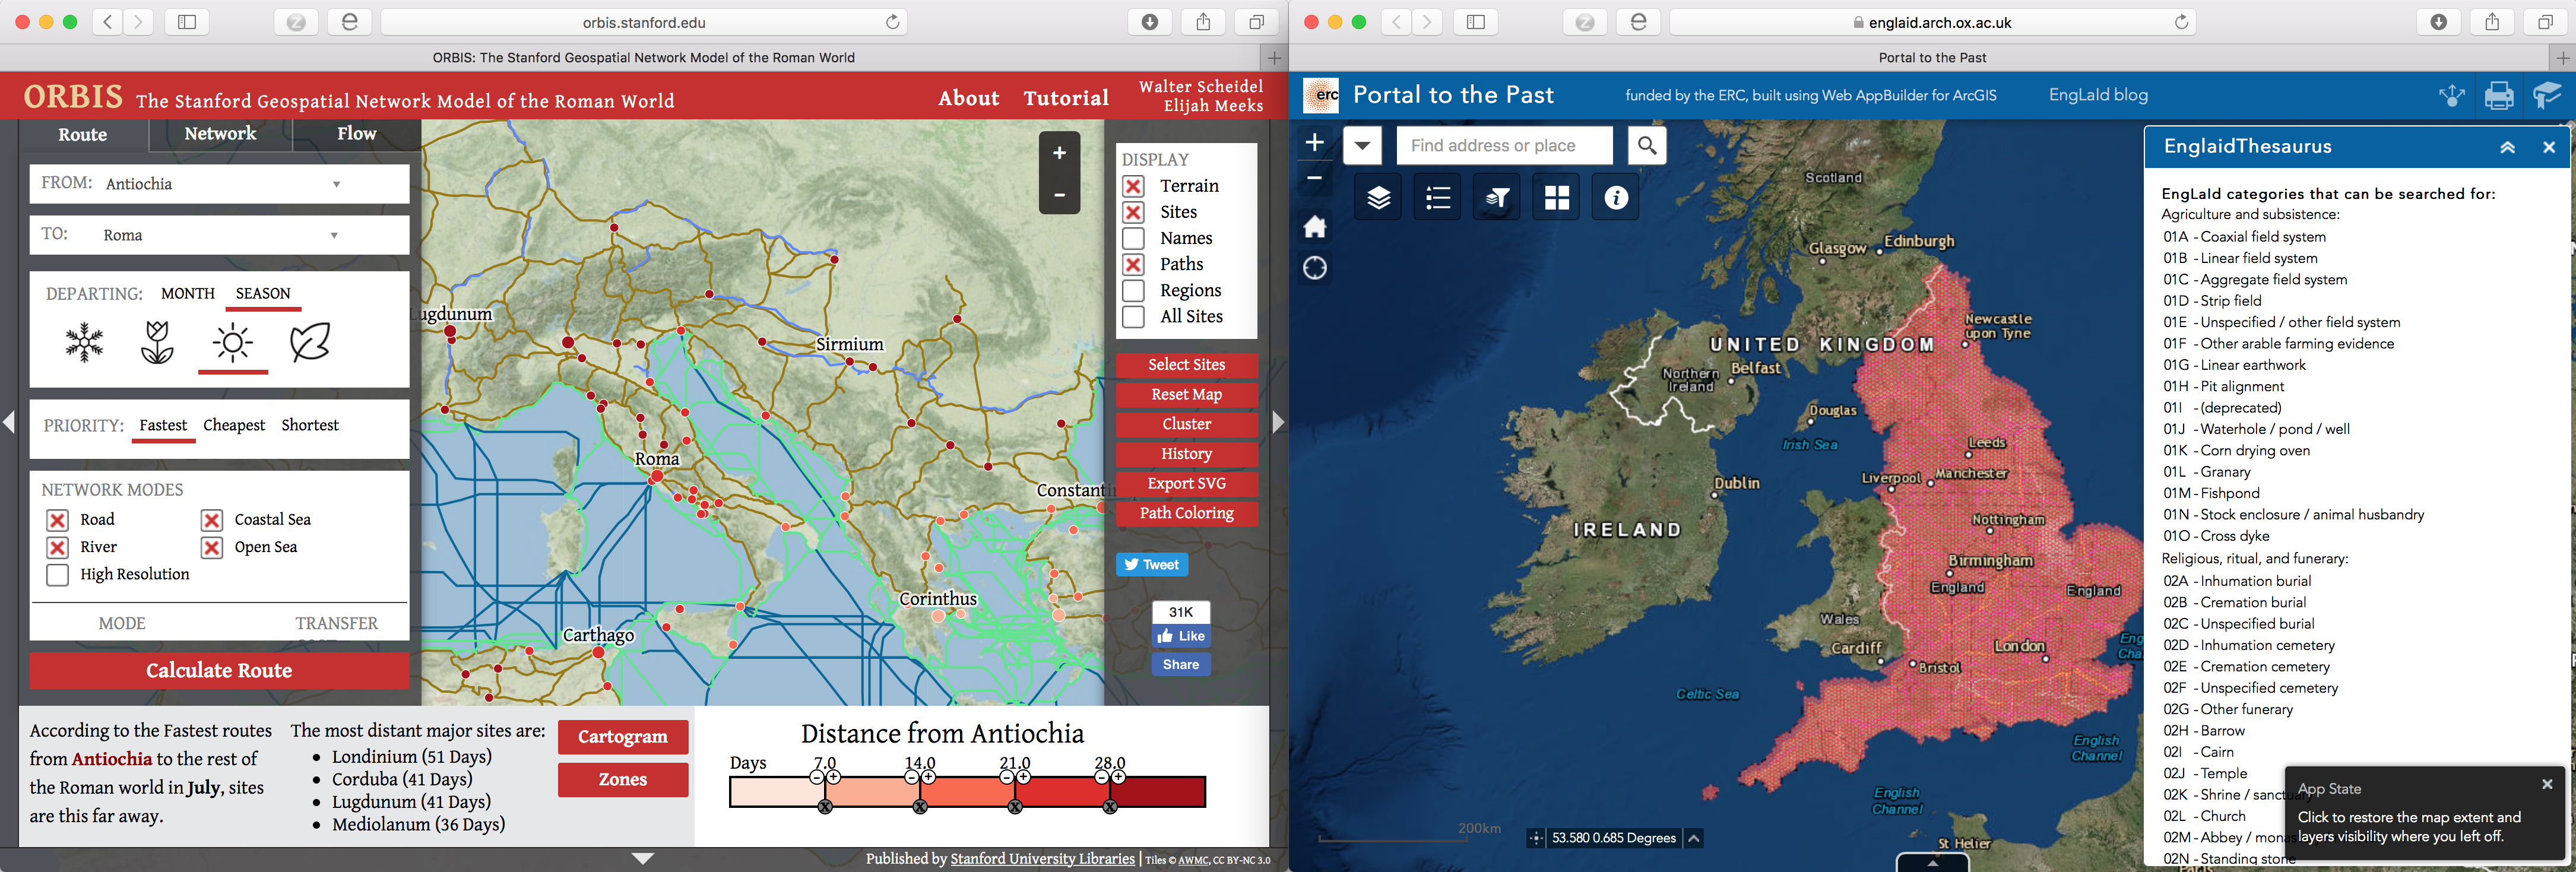 Figure 1 - Public-facing GIS tools from ORBIS and EngLaId.